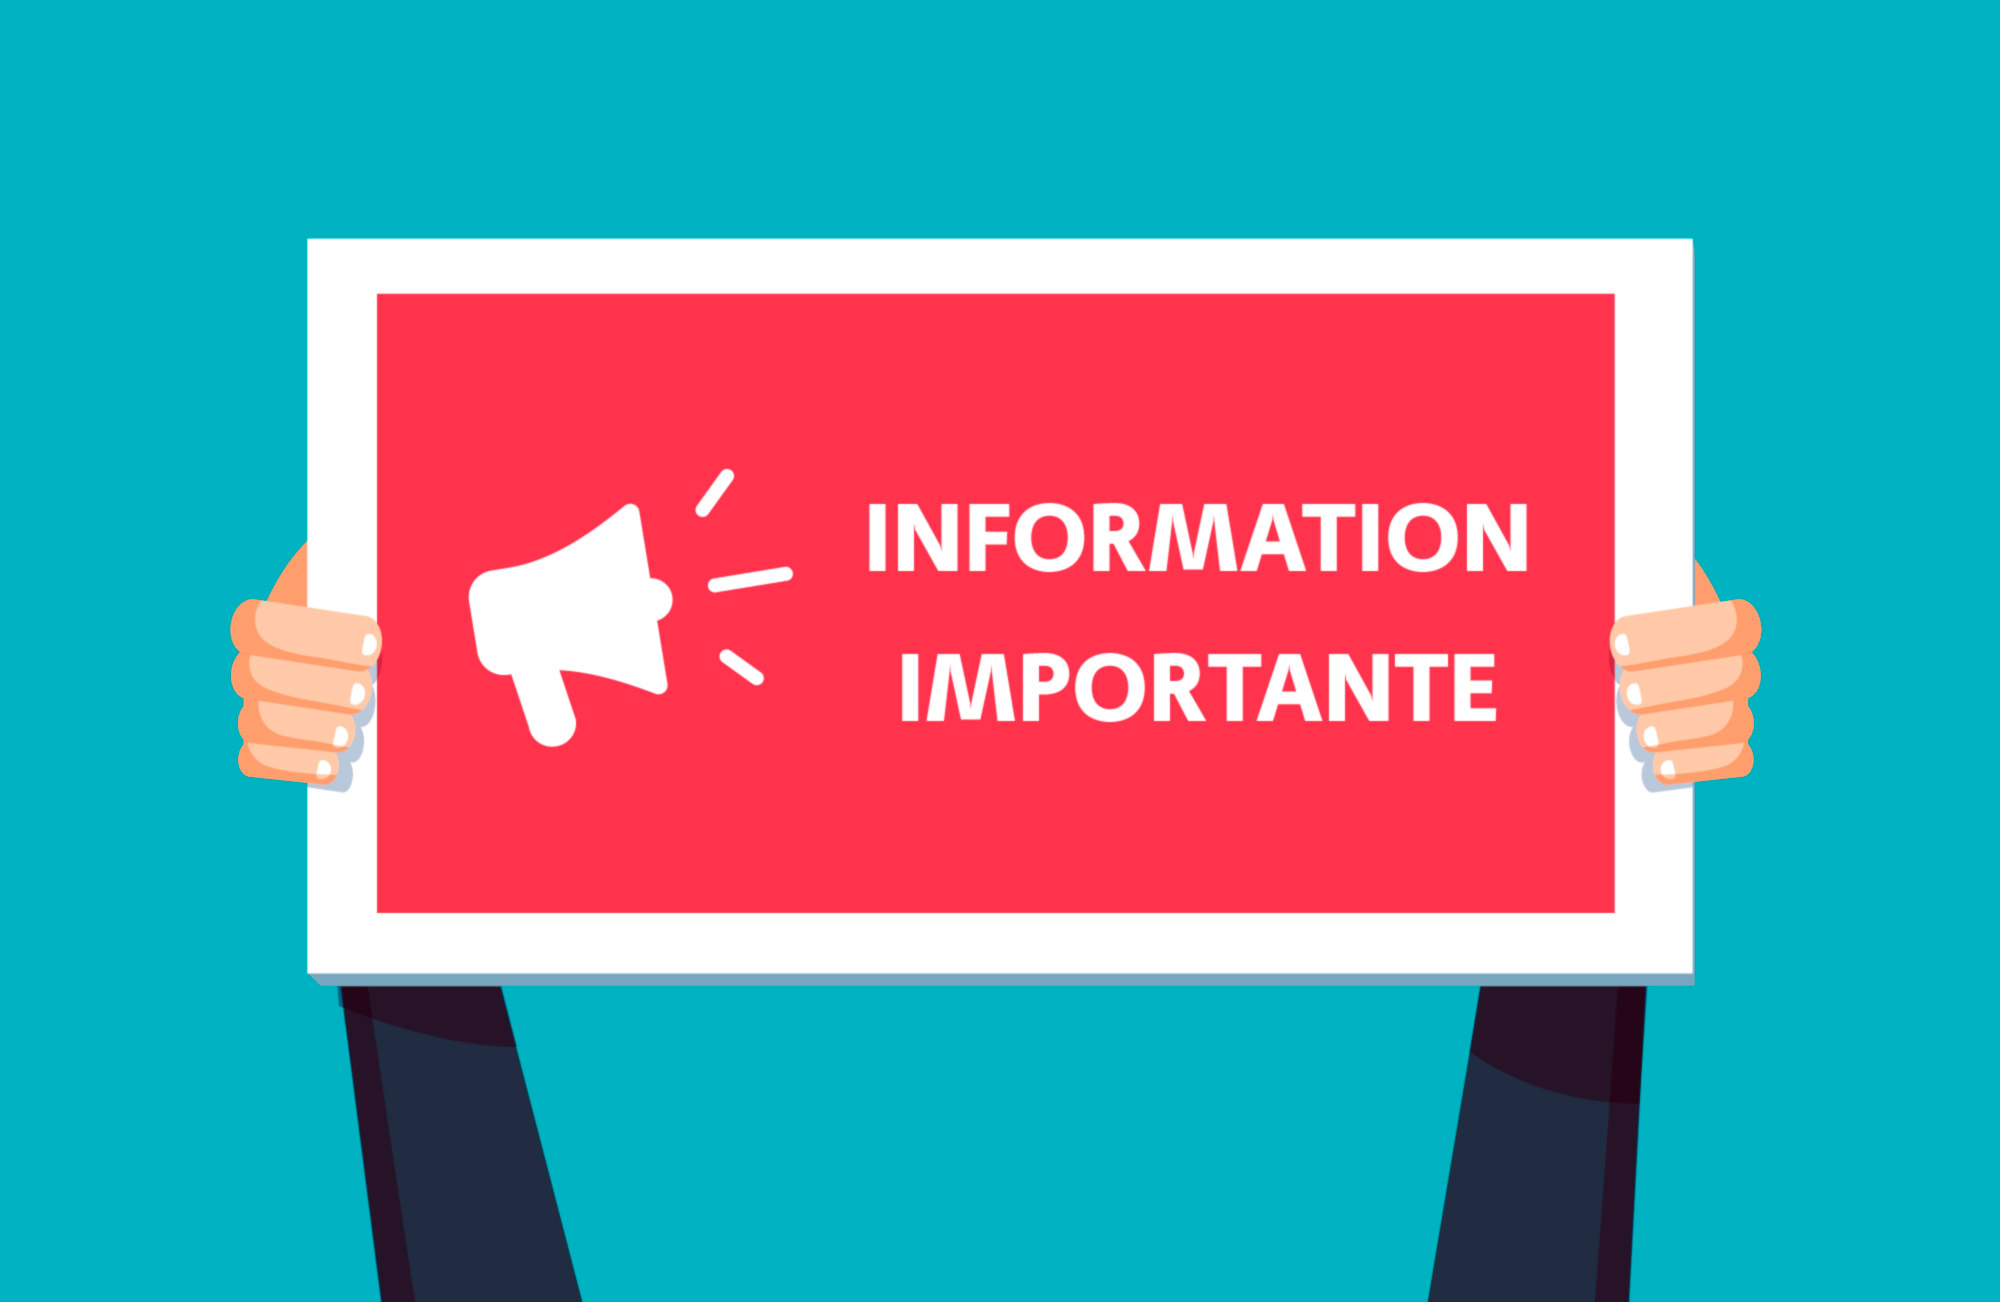 Information importante - annulation report